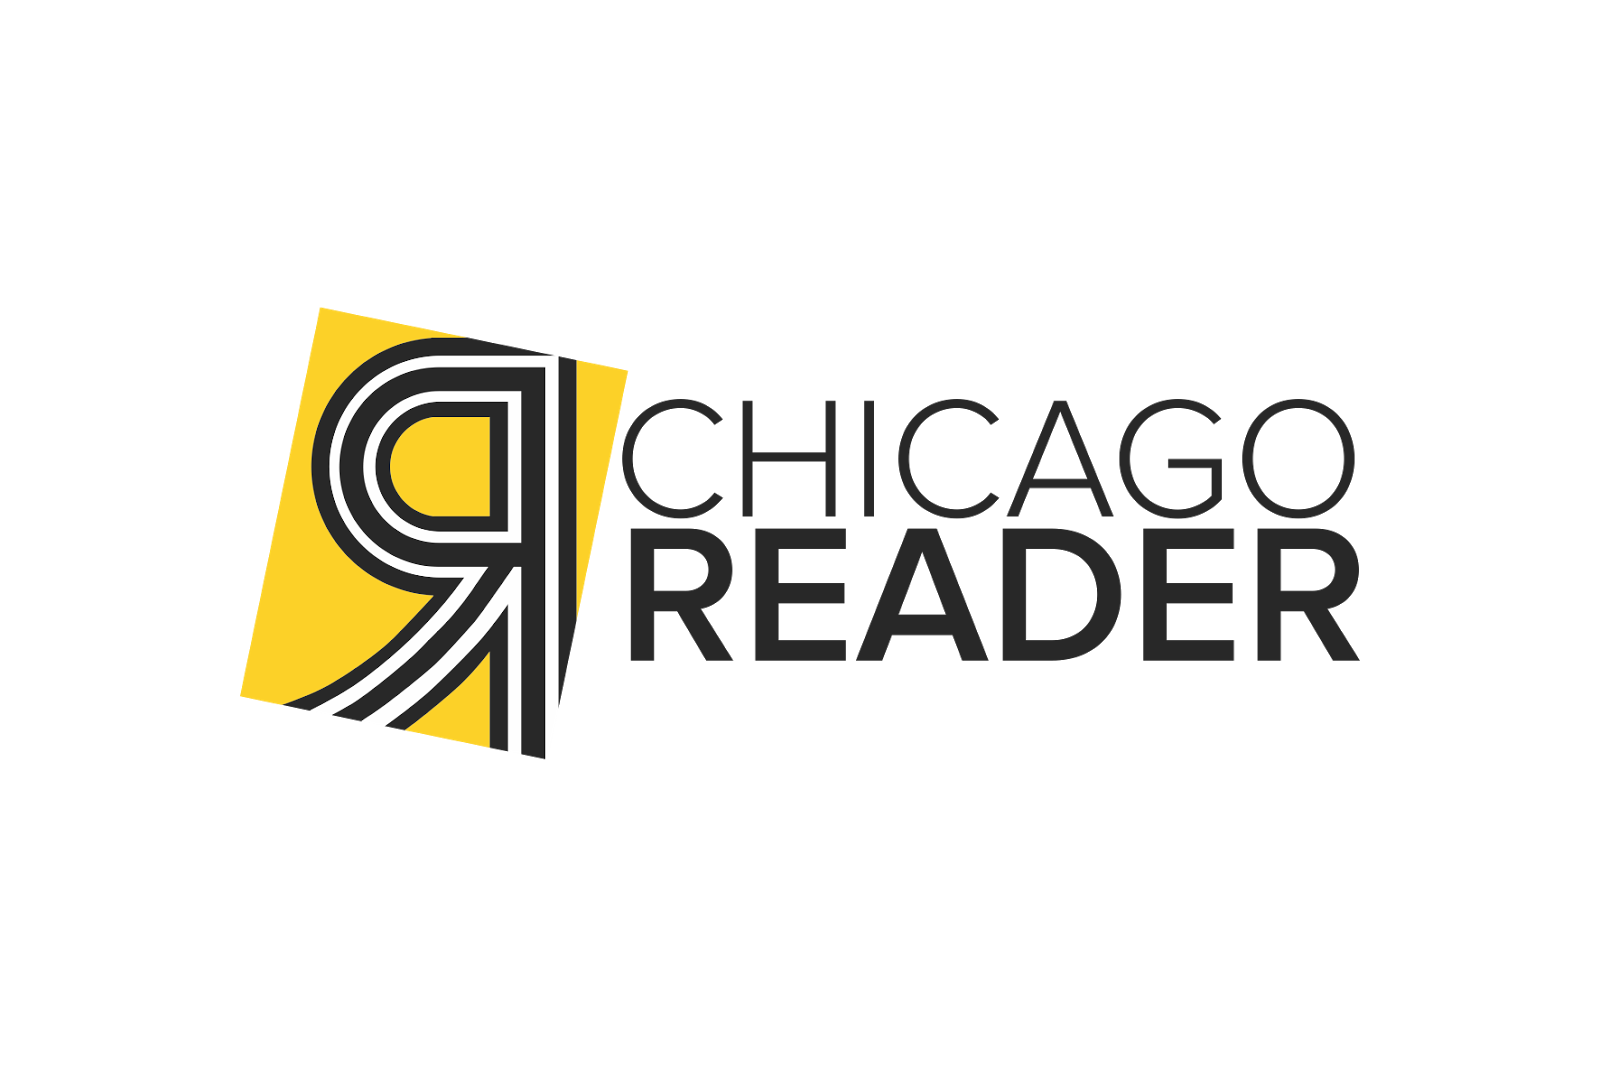 chicagoreaderpng